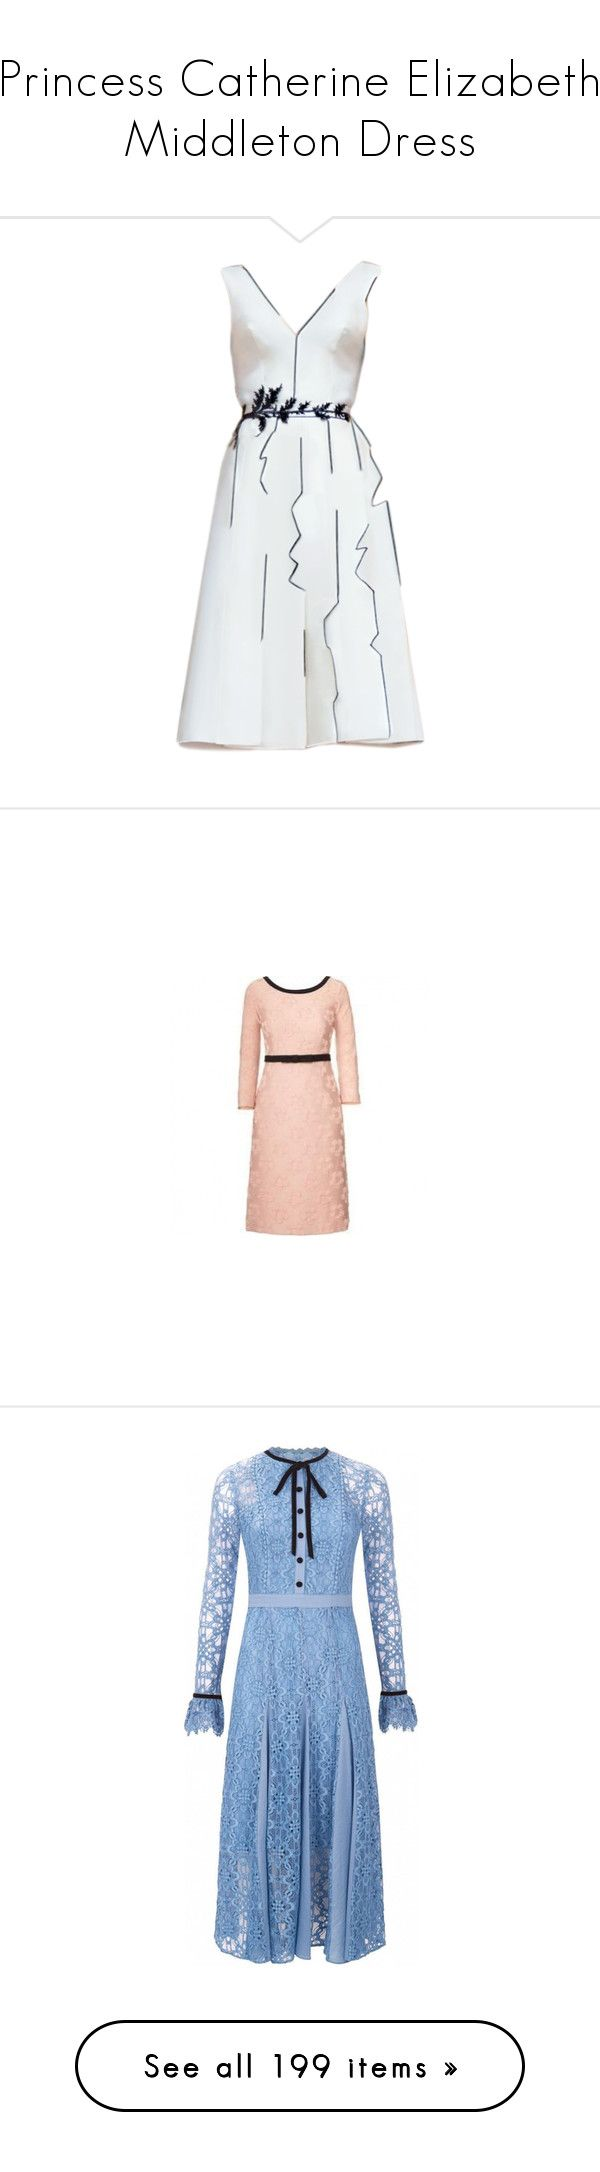 """""""Princess Catherine Elizabeth Middleton Dress"""" by taught-to-fly19 on Polyvore featuring dresses, pink dress, flower cocktail dress, tight dresses, blossom dress, pink fitted dress, temperley london dress, blue dresses, temperley london e blue color dress"""